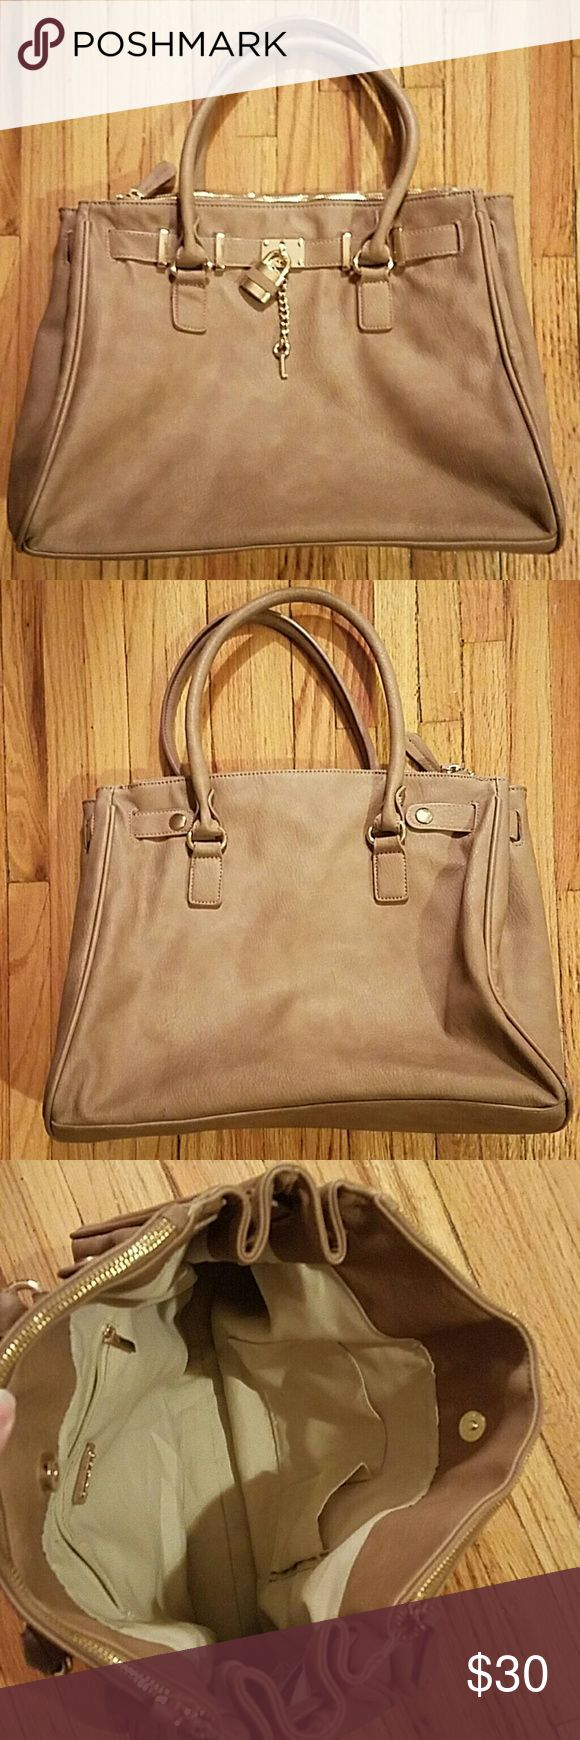 Taupe Aldo Purse Great color for fall! Medium sized bag. Gold lock and key design. Plenty of room inside with two zippered compartments on each side. One zippered pocket and two open pockets inside main compartment. Aldo Bags